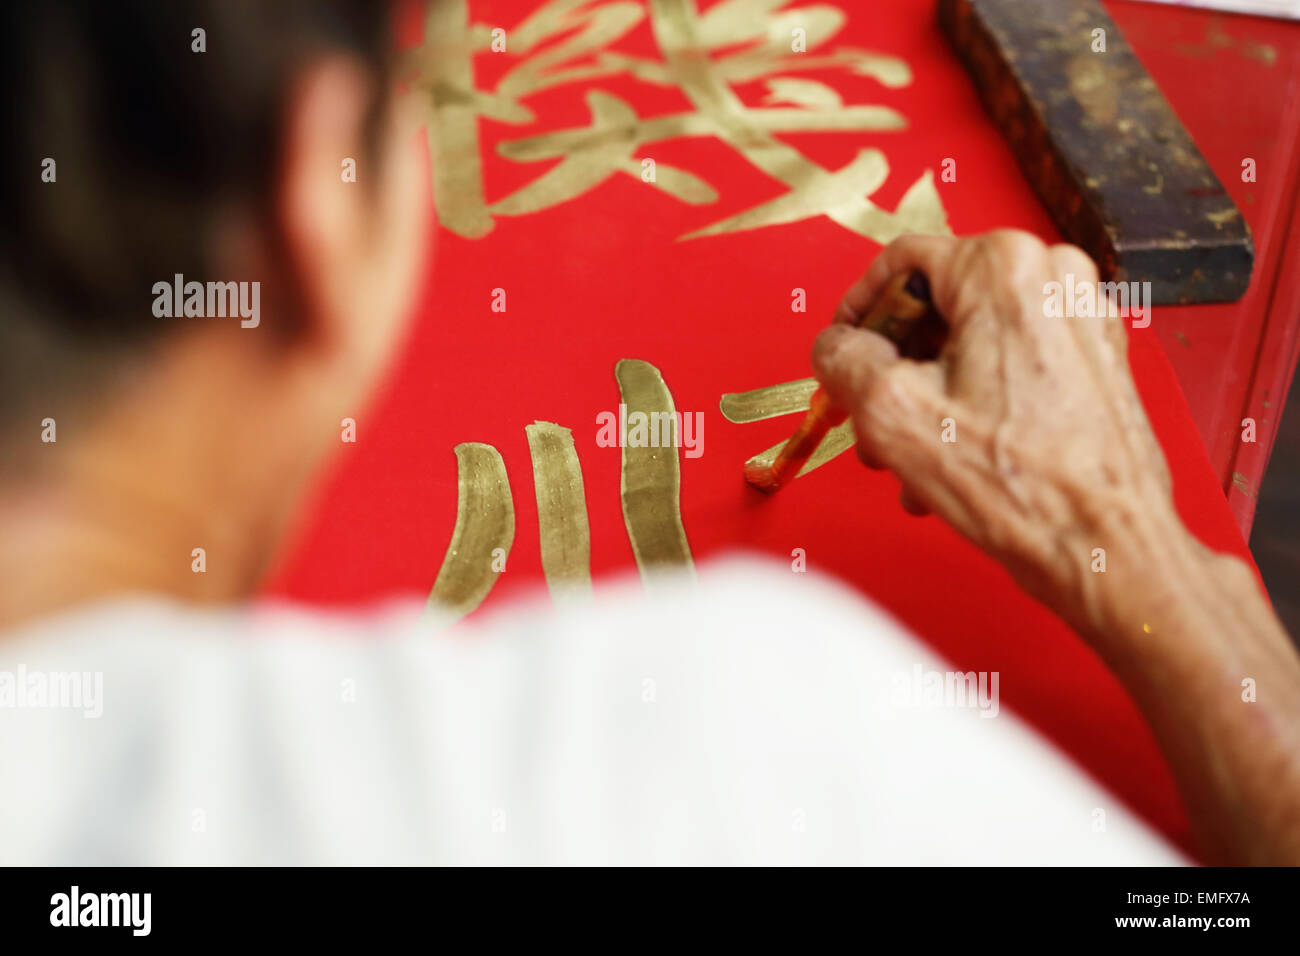 the painting greeting for Chinese new year festival - Stock Image